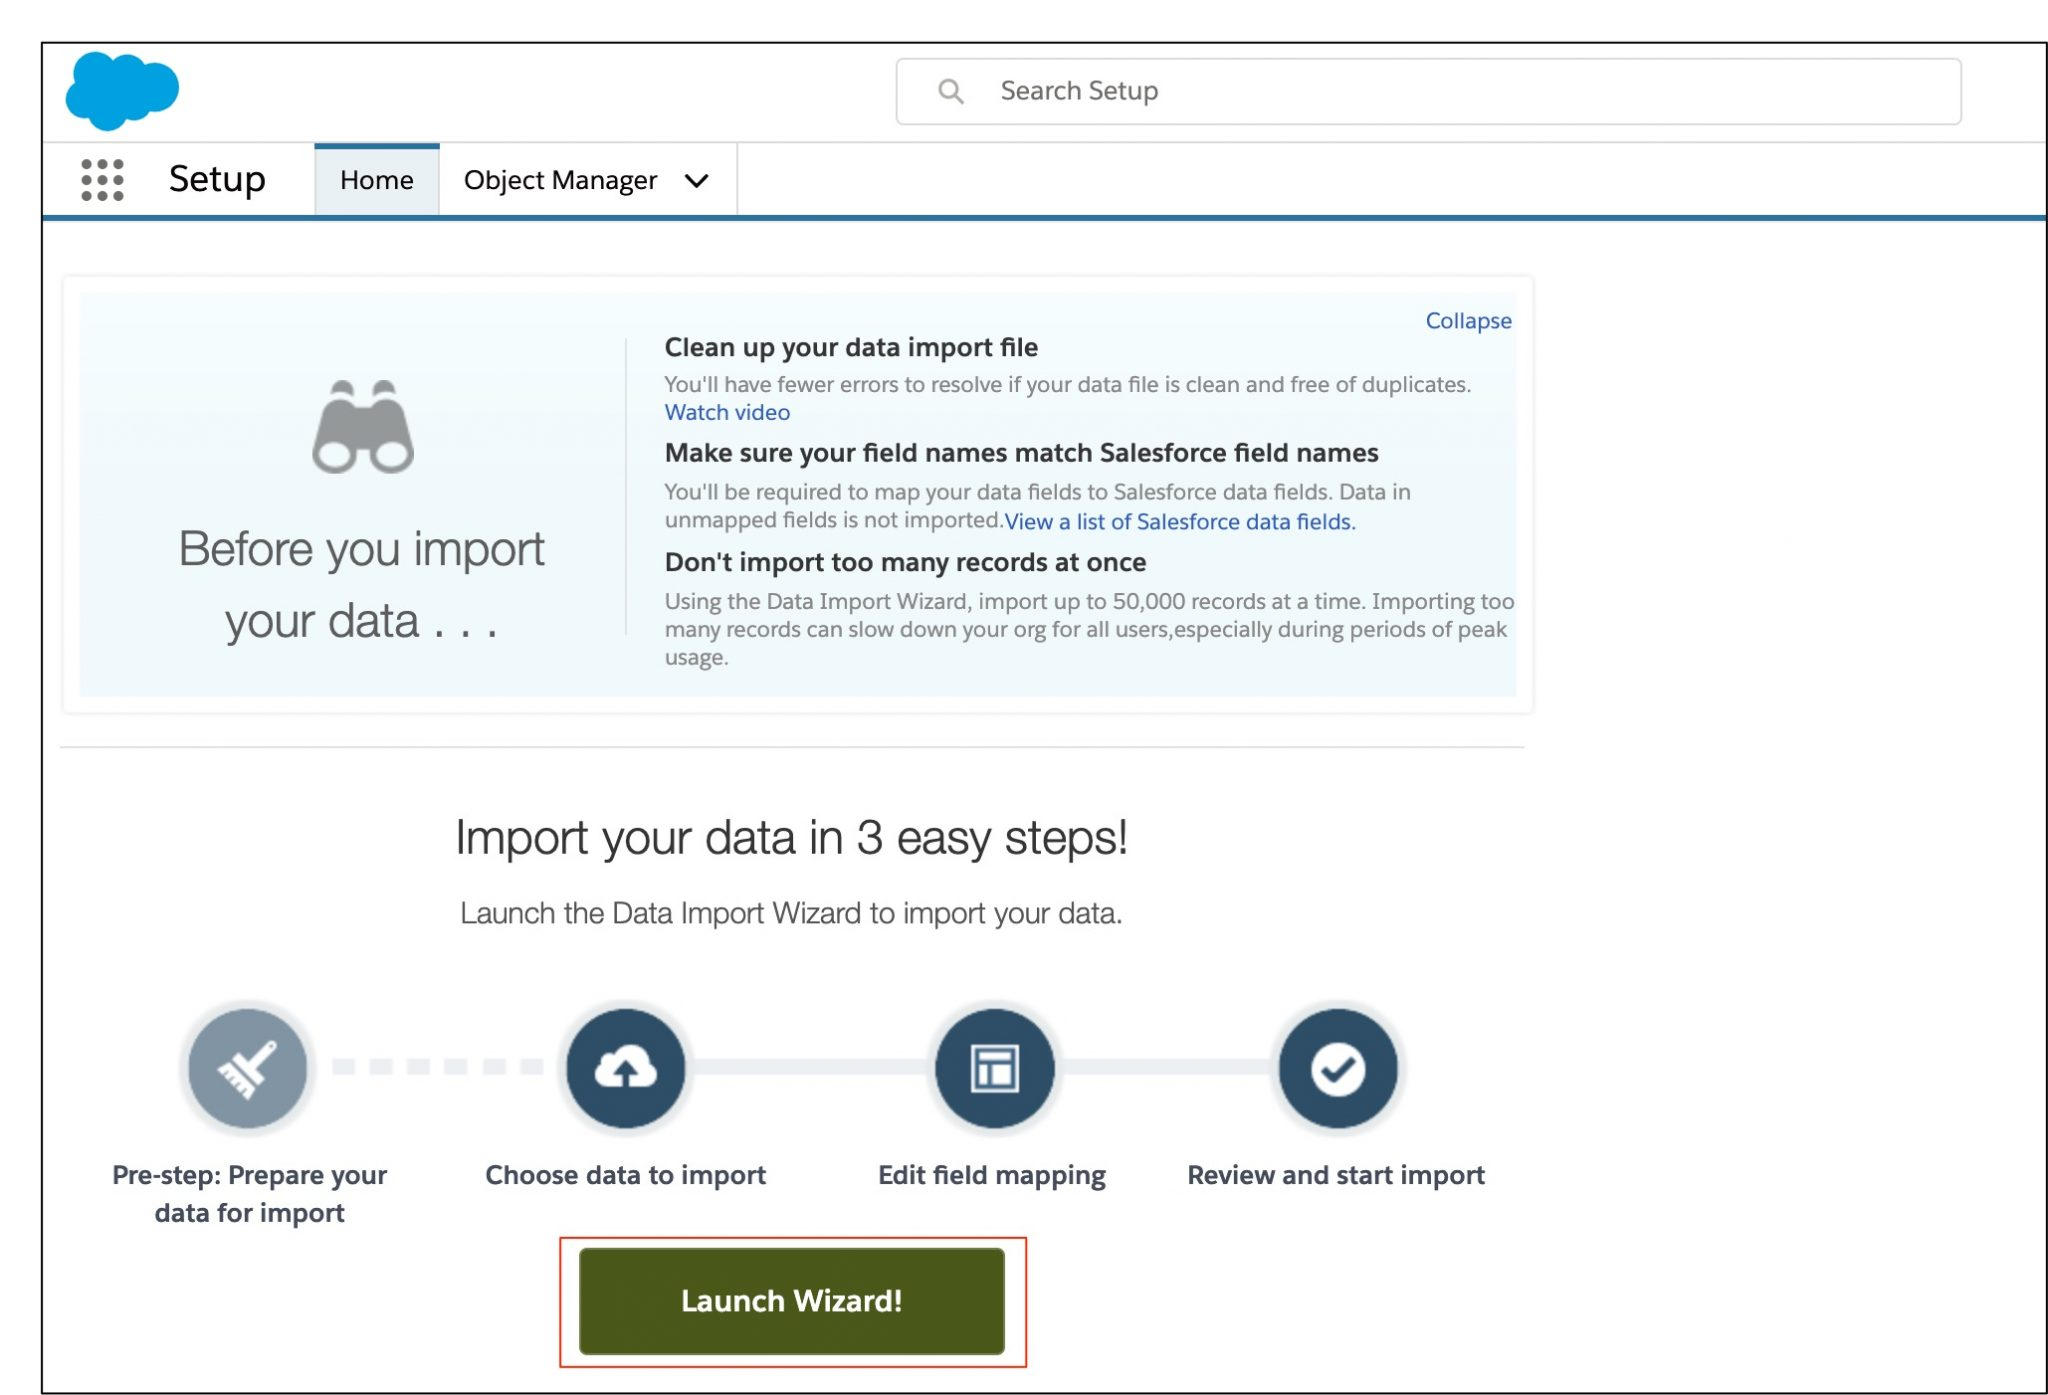 How-to-Launch-Data-Import-Wizard-in-Salesforce